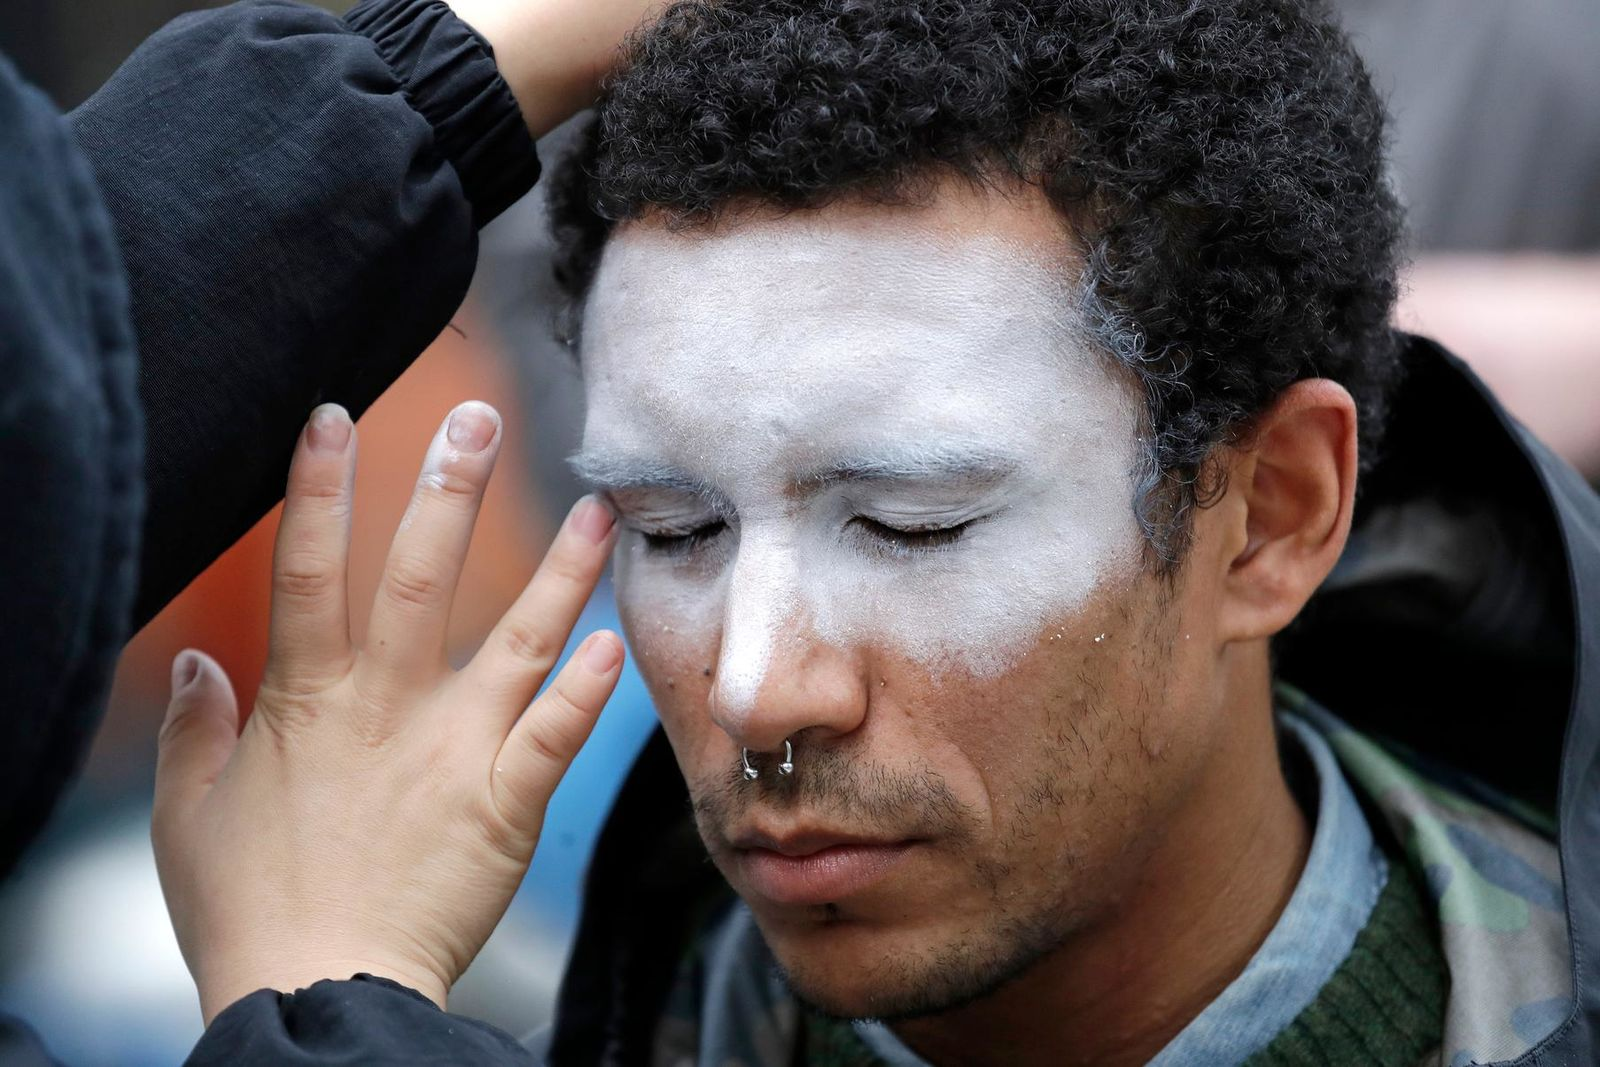 "FILE - In this Oct. 31, 2018, file photo, a man, who declined to be identified, has his face painted to represent efforts to defeat facial recognition during a protest at Amazon headquarters over the company's facial recognition system, ""Rekognition,"" in Seattle. San Francisco is on track to become the first U.S. city to ban the use of facial recognition by police and other city agencies as the technology creeps increasingly into daily life. Studies have shown error rates in facial-analysis systems built by Amazon, IBM and Microsoft were far higher for darker-skinned women than lighter-skinned men. (AP Photo/Elaine Thompson, File)"